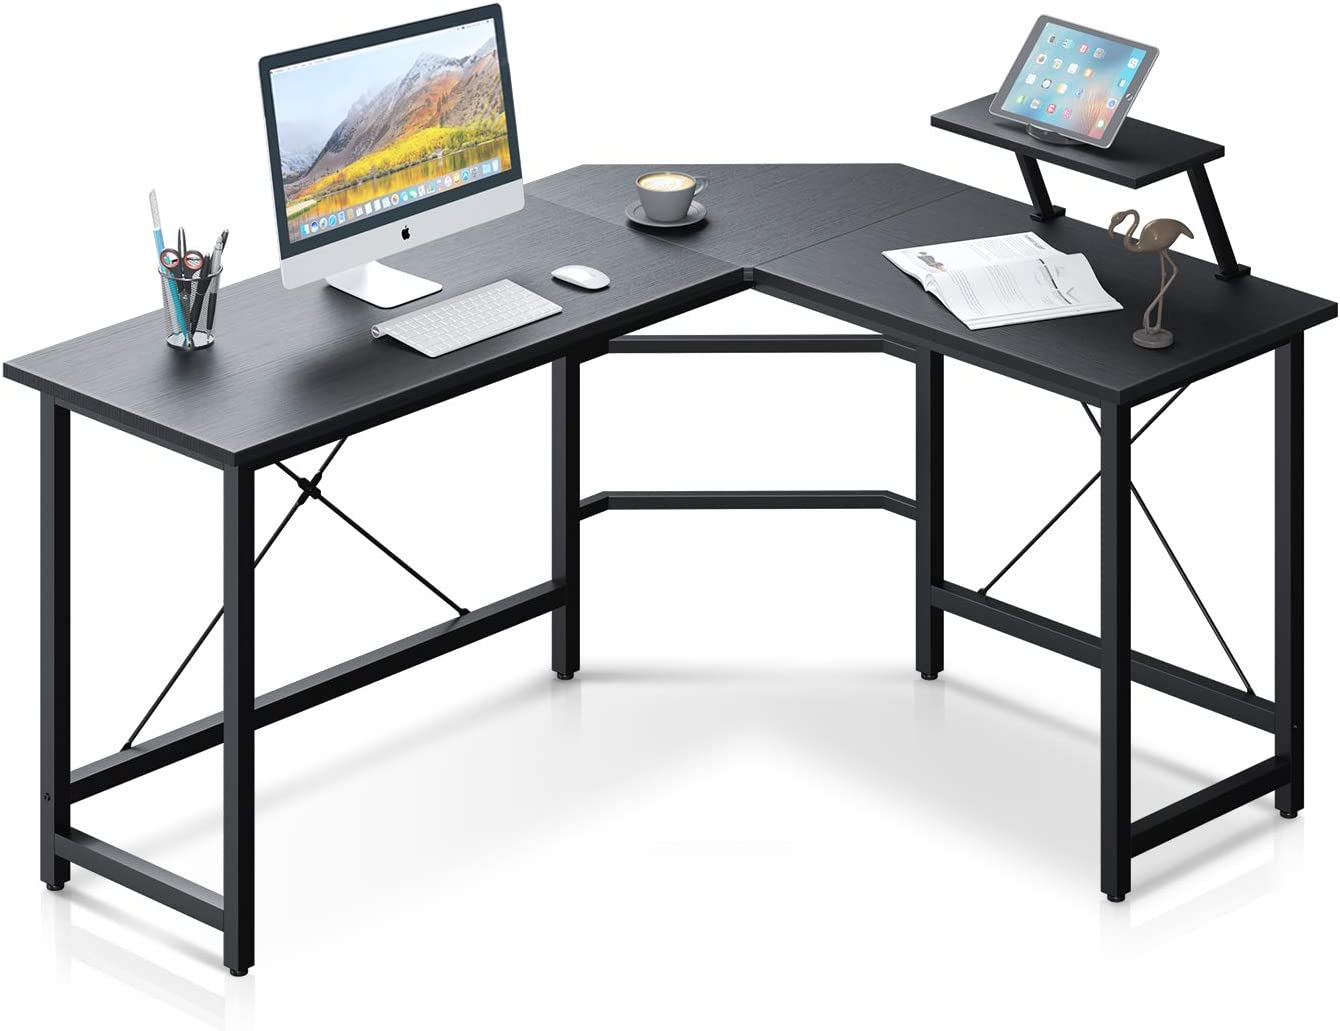 "Reversible L Shaped Computer Desk 58"" Home Office Desk with Removable Large Monitor Stand Sturdy Steel Frame Corner Desk Gaming Desk for Work Station, Black"